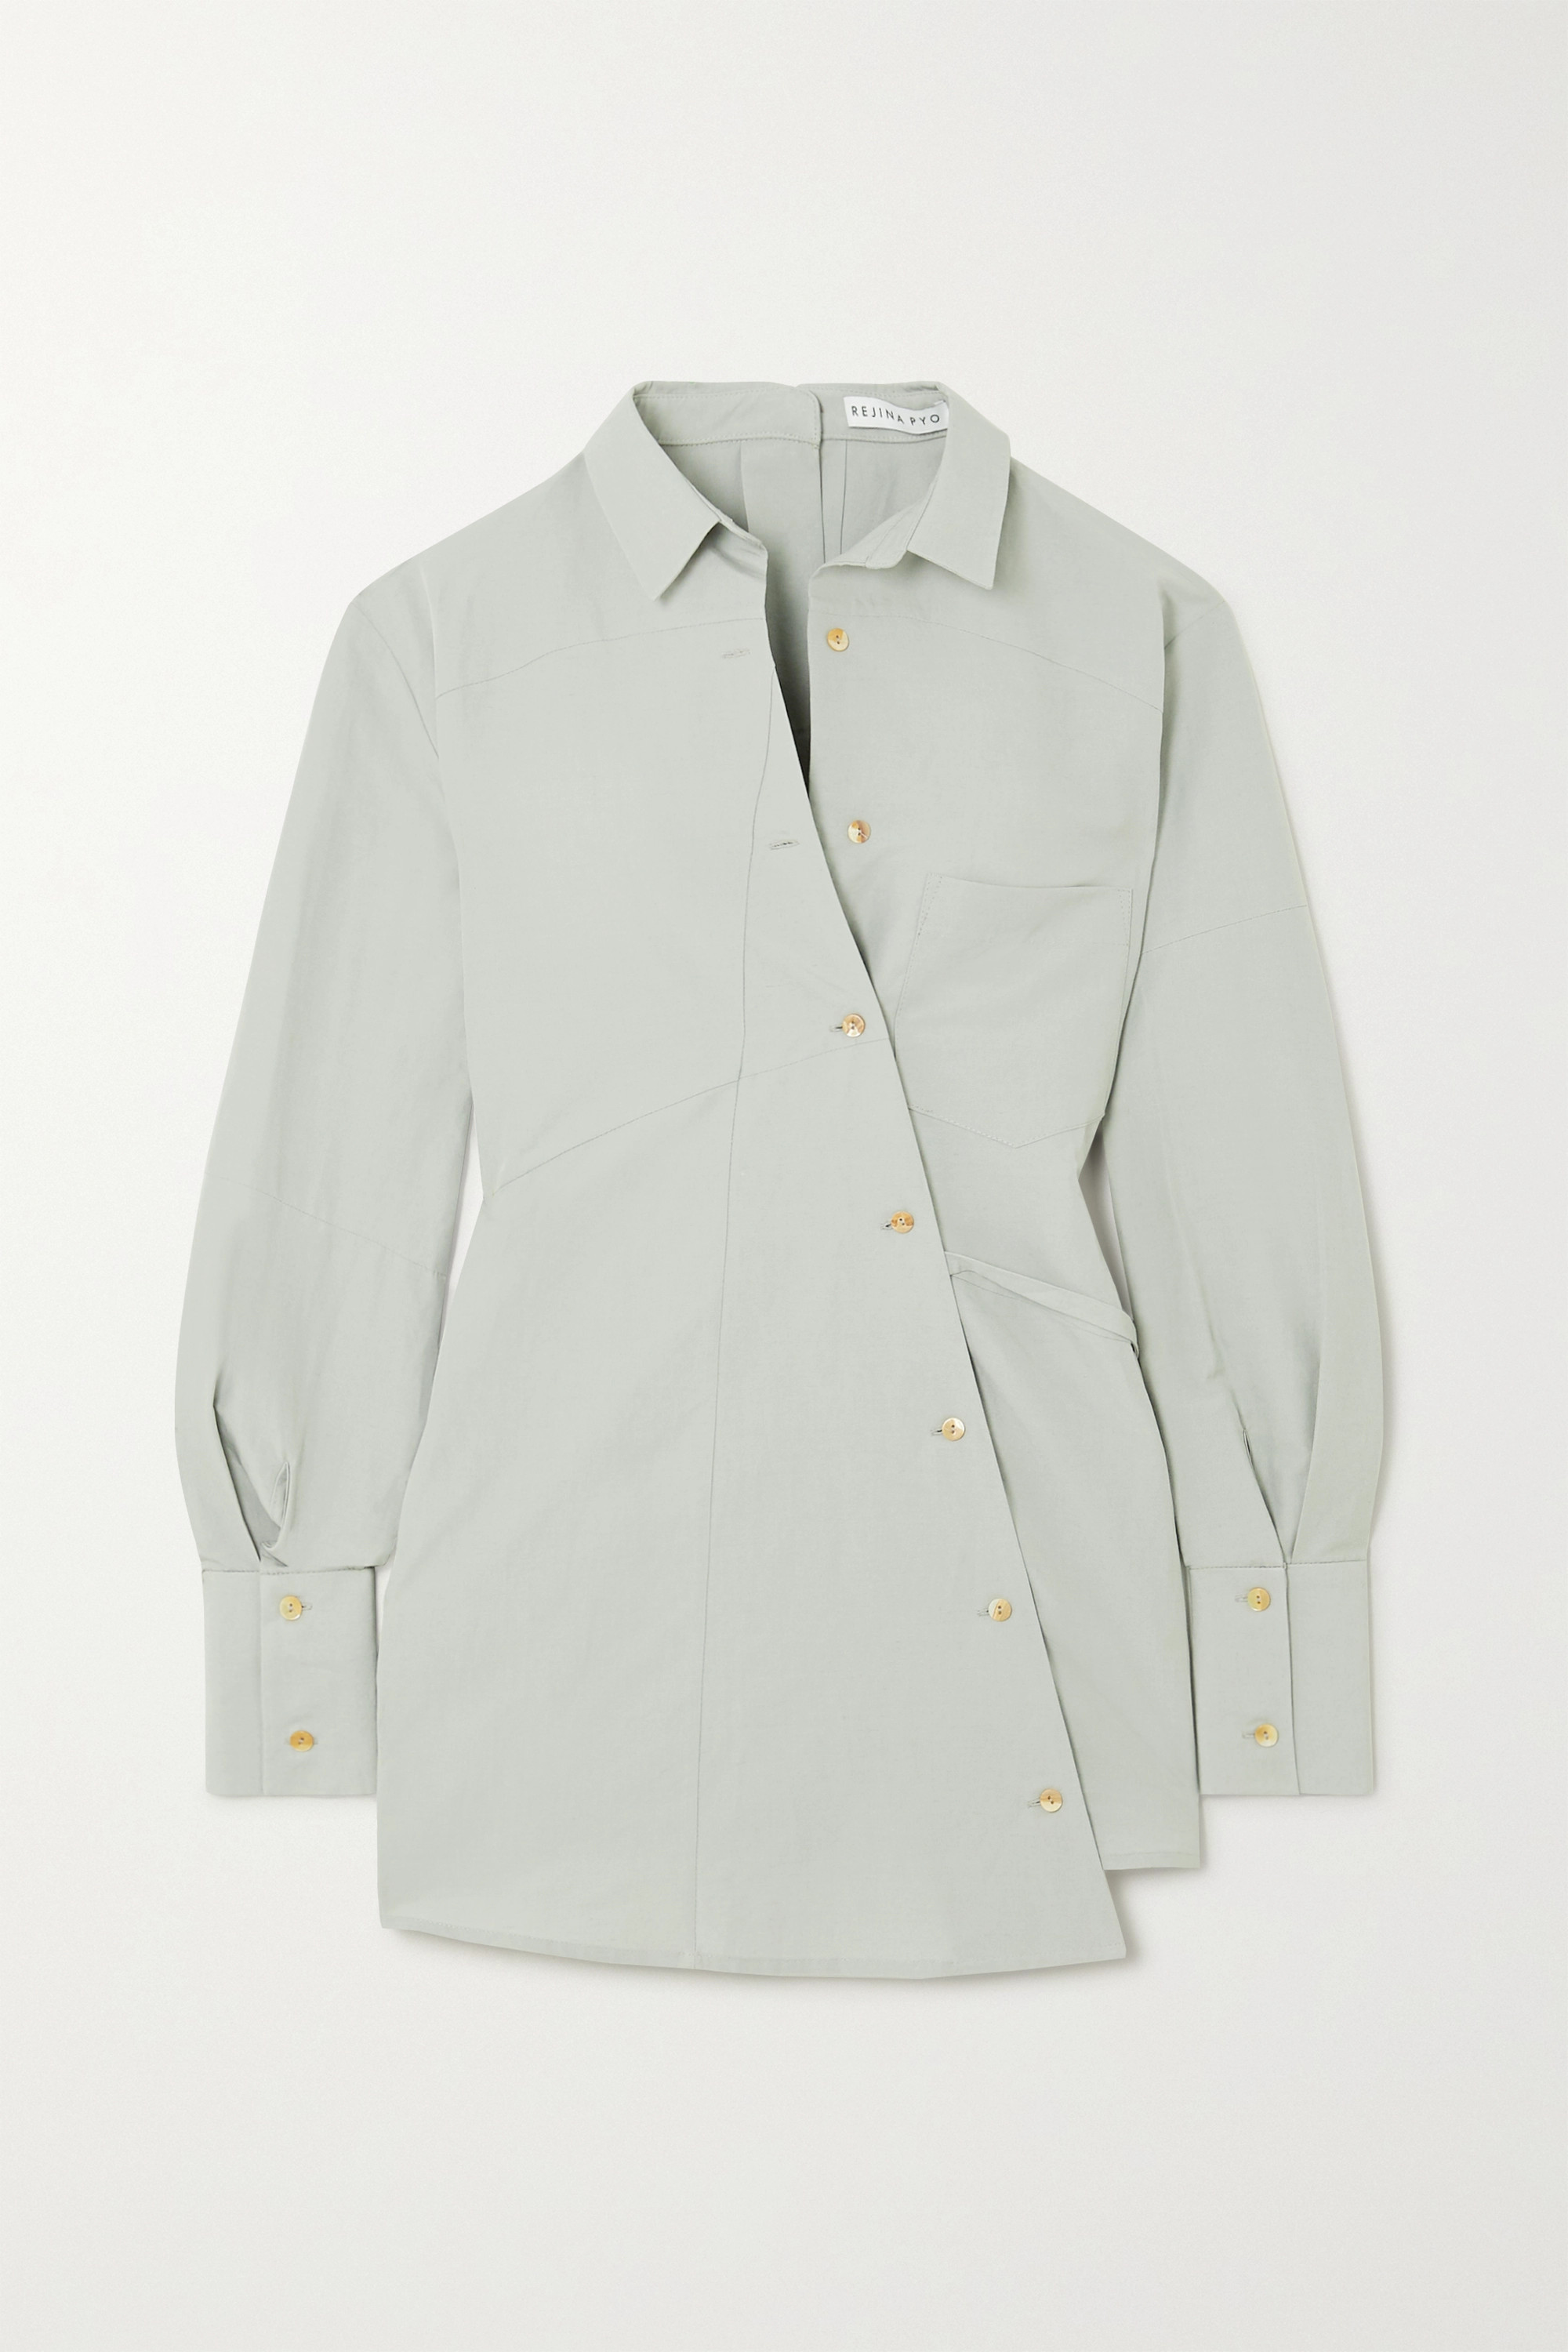 REJINA PYO Tatiana asymmetric tie-detailed cotton and linen-blend shirt